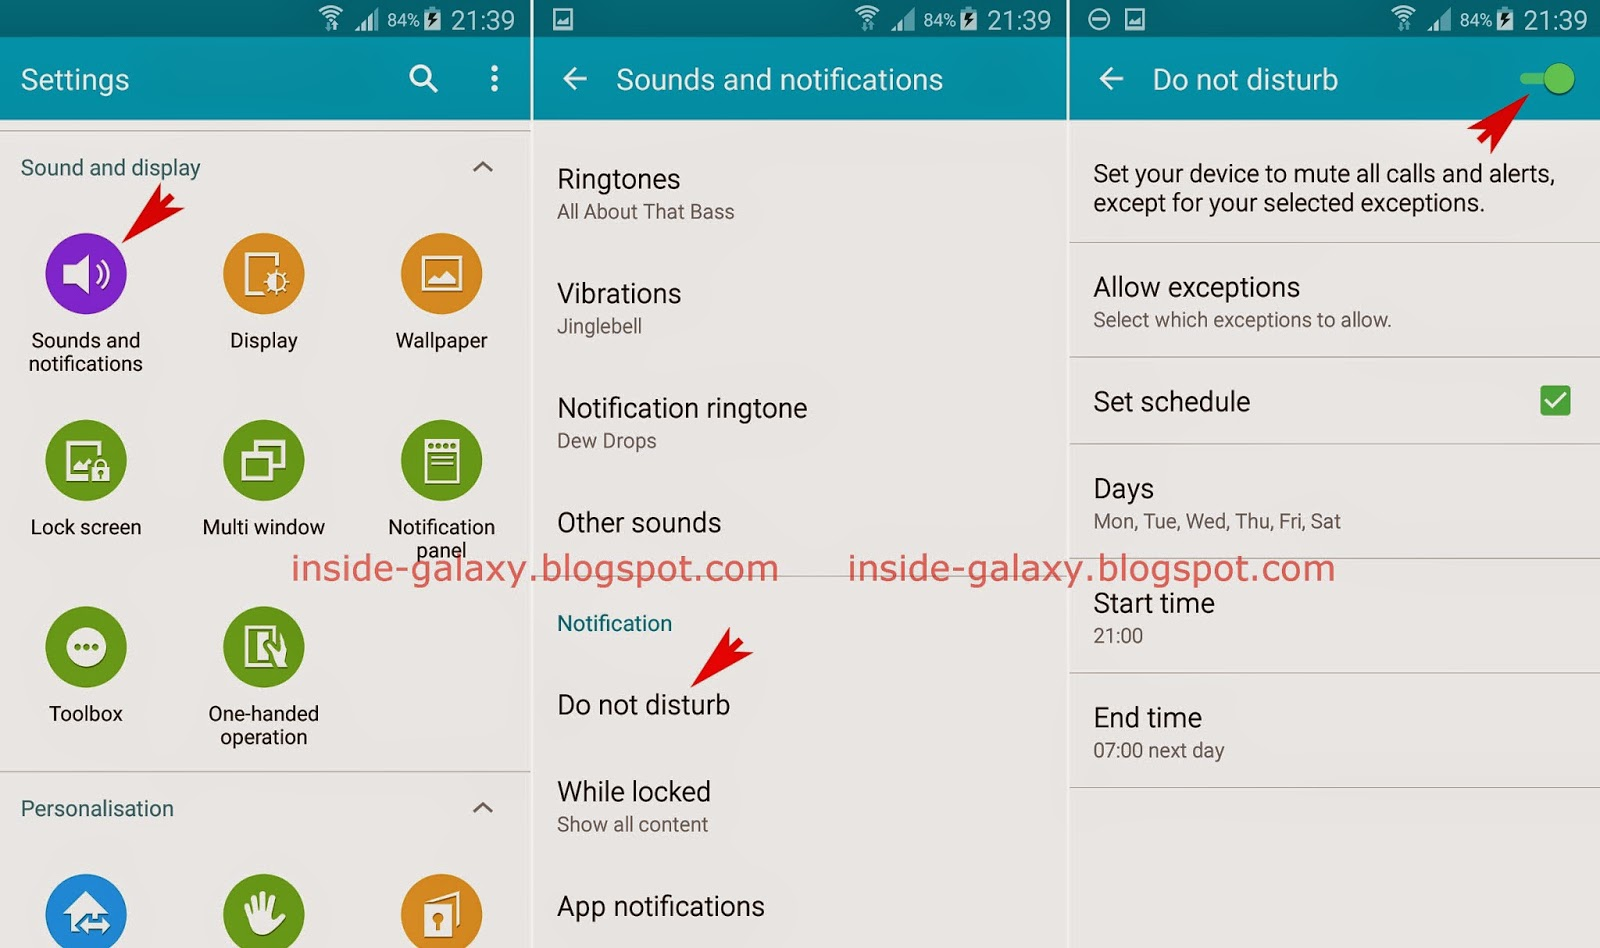 Samsung Galaxy S5: How to Use Do Not Disturb Feature in Android 5.0